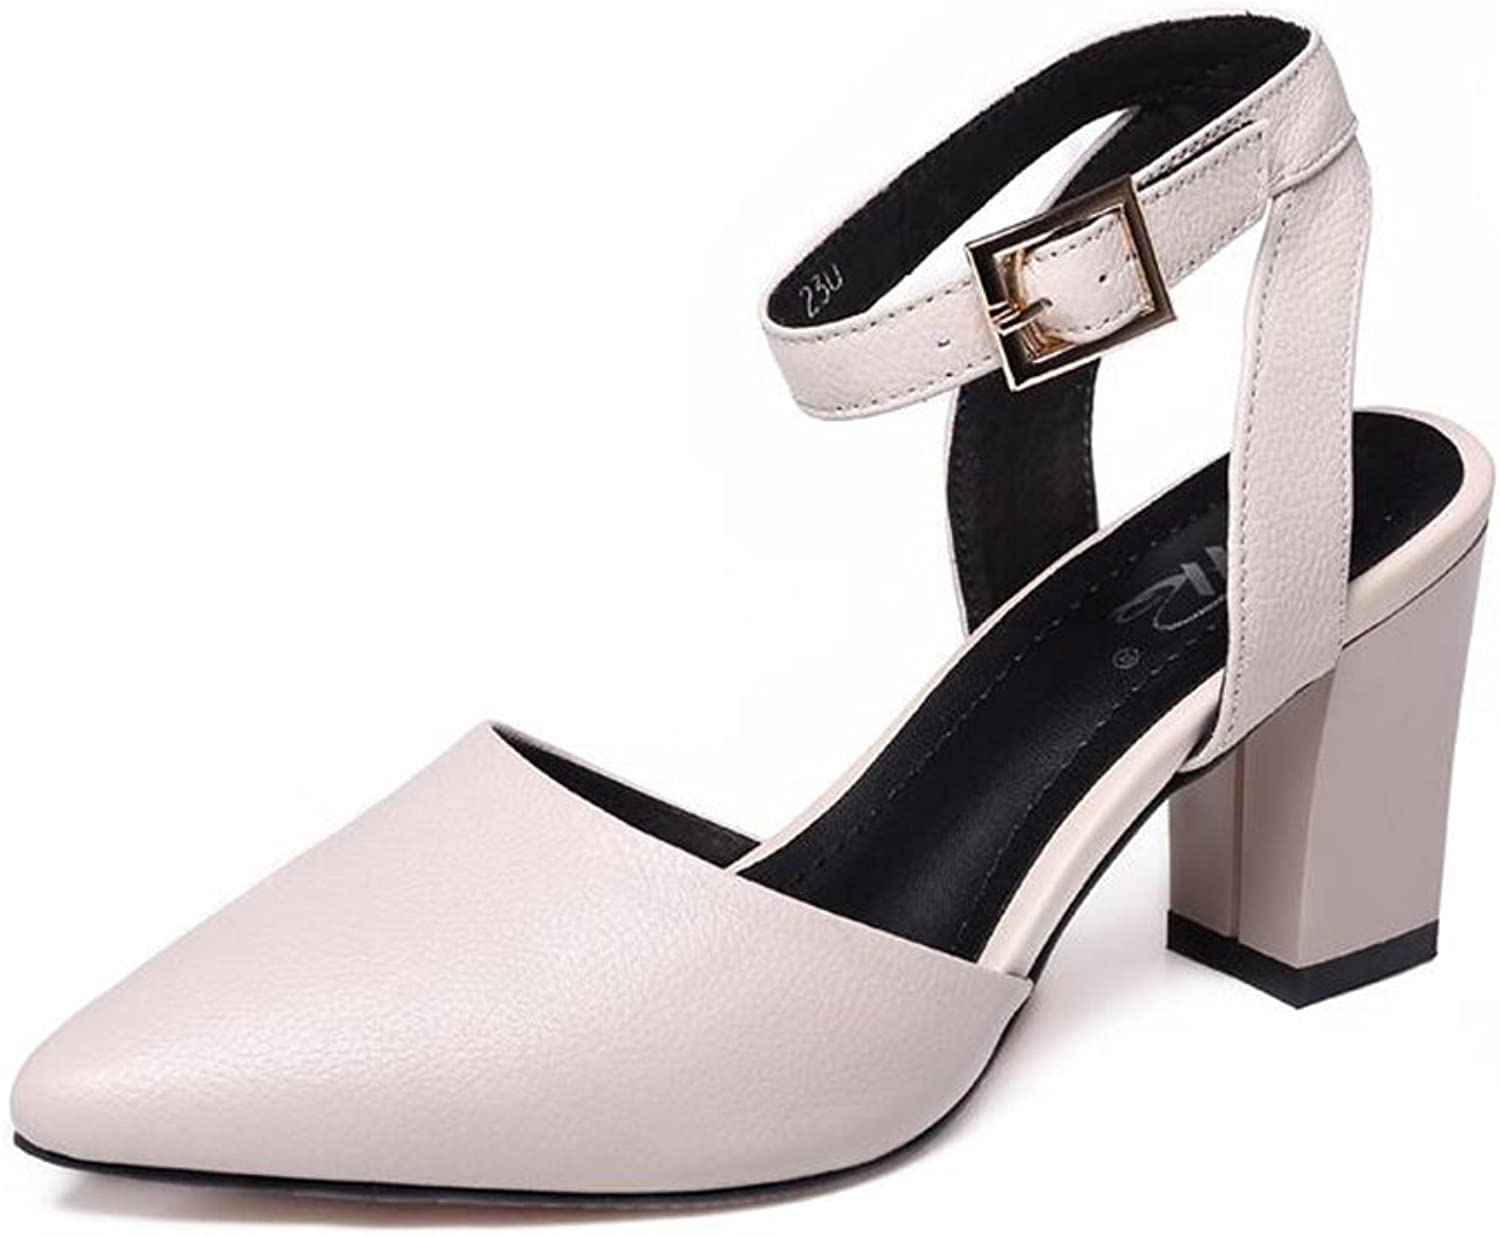 Summer shoes Pointed Leather High Heels Belt Buckle Leather Heel Sandals